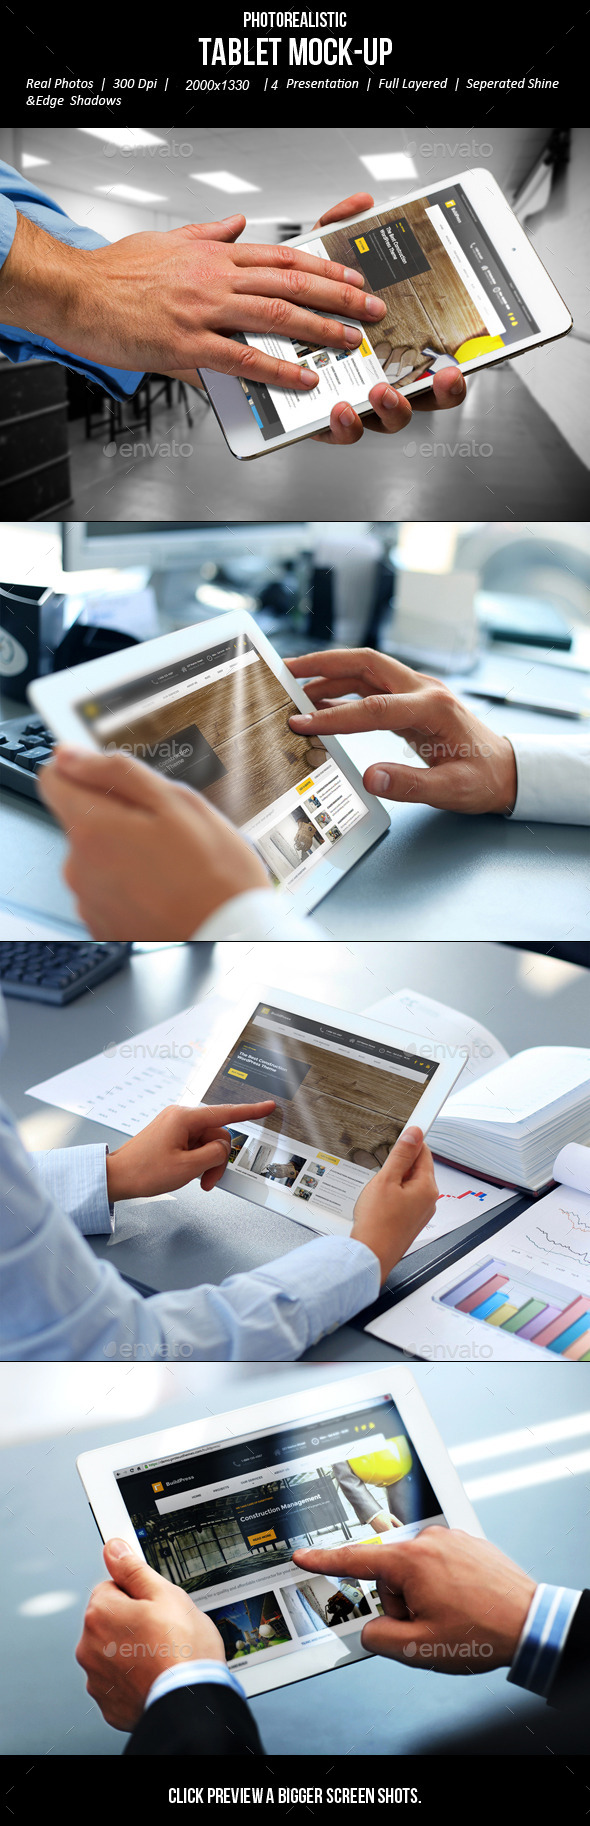 GraphicRiver Photorealistic Tablet Mock-Up 10667050